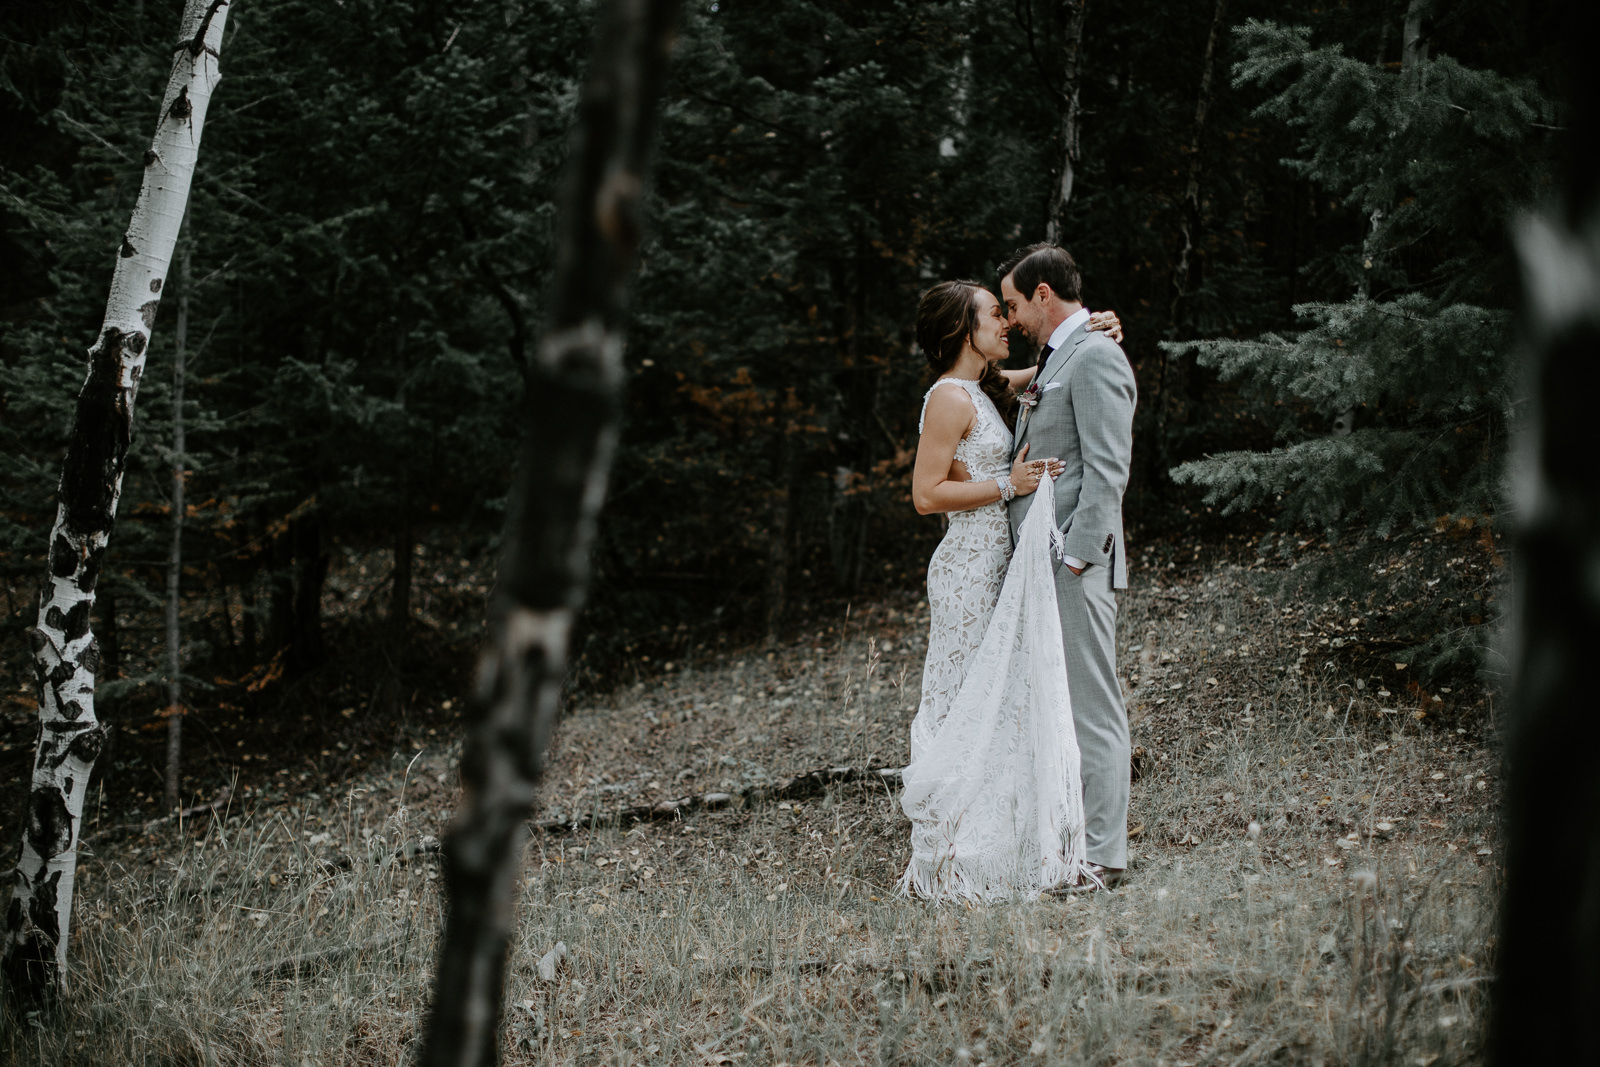 Embracing soon-to-be married couple standing among aspen trees